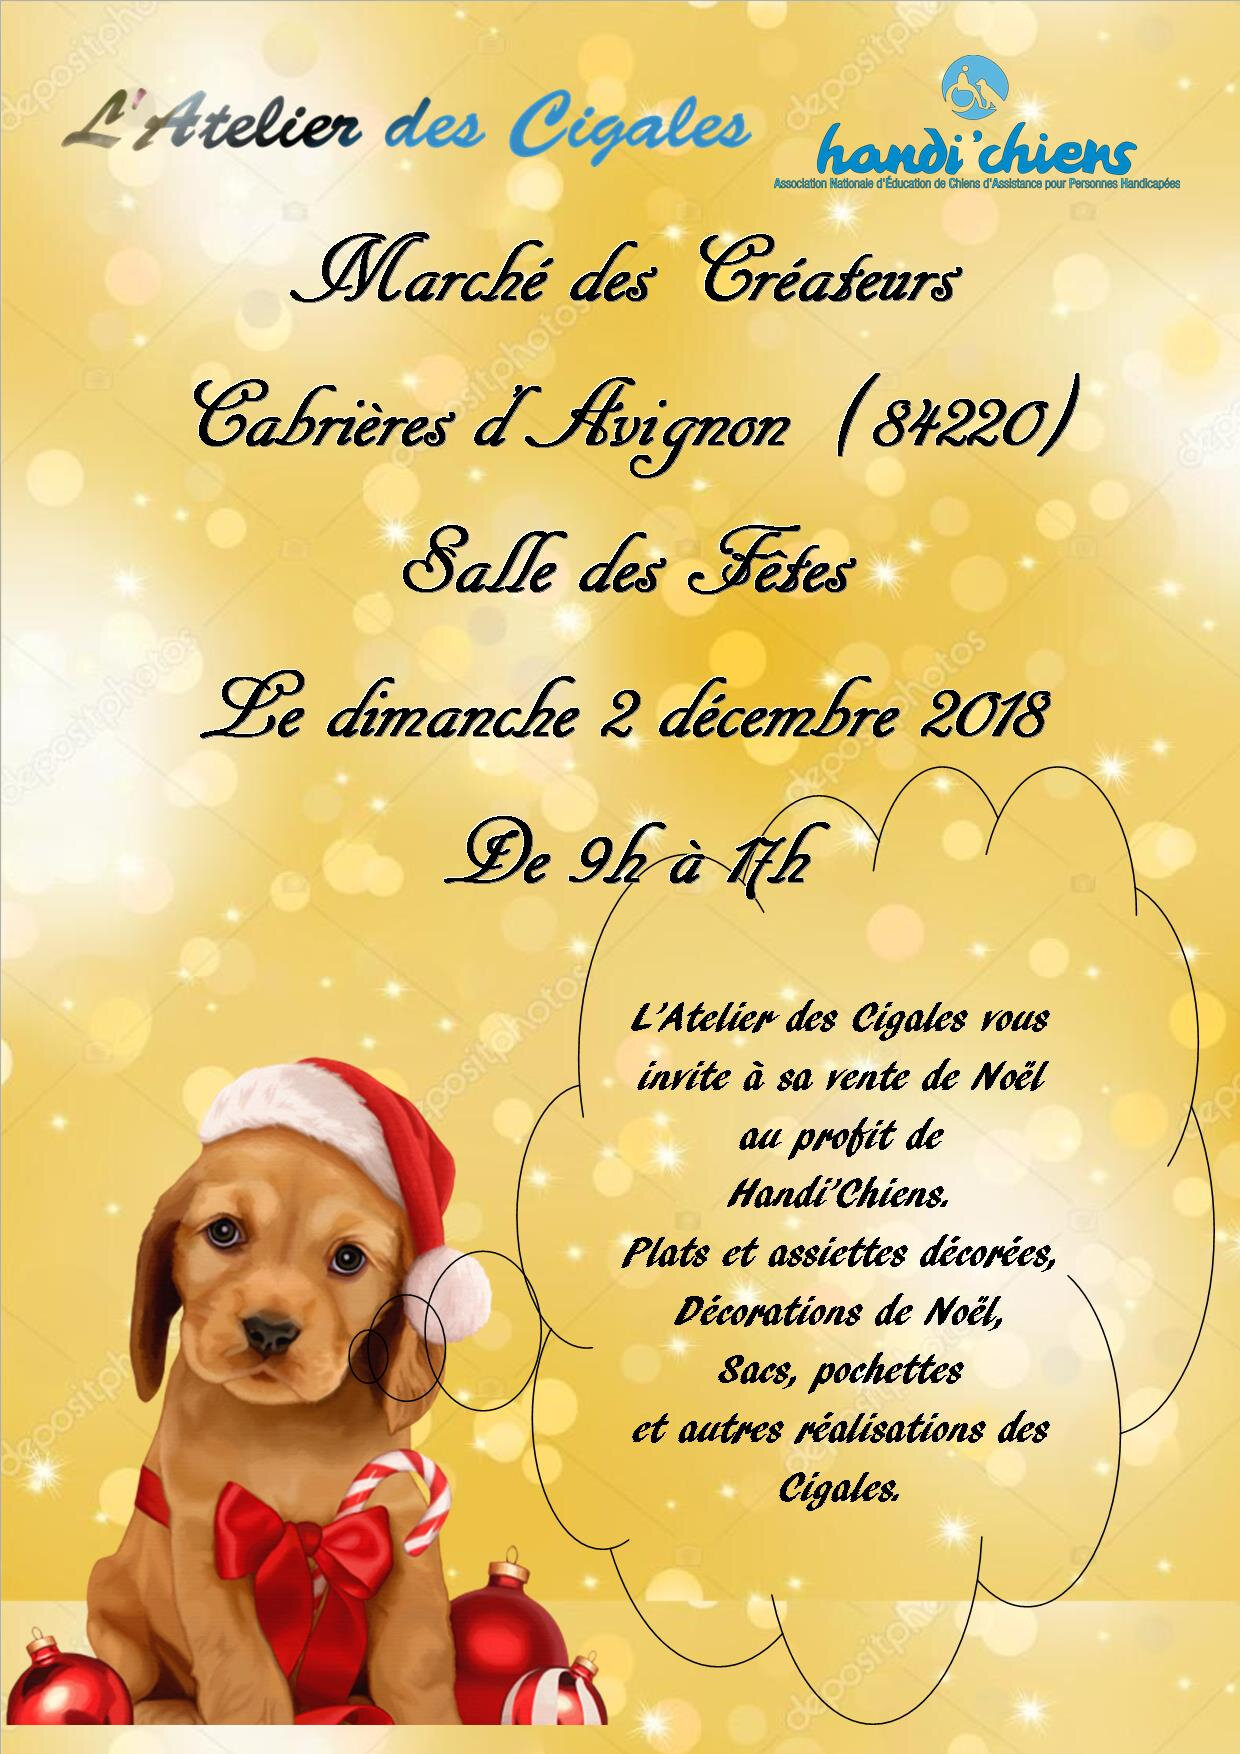 Affiche_Noel2018_Cabrieres